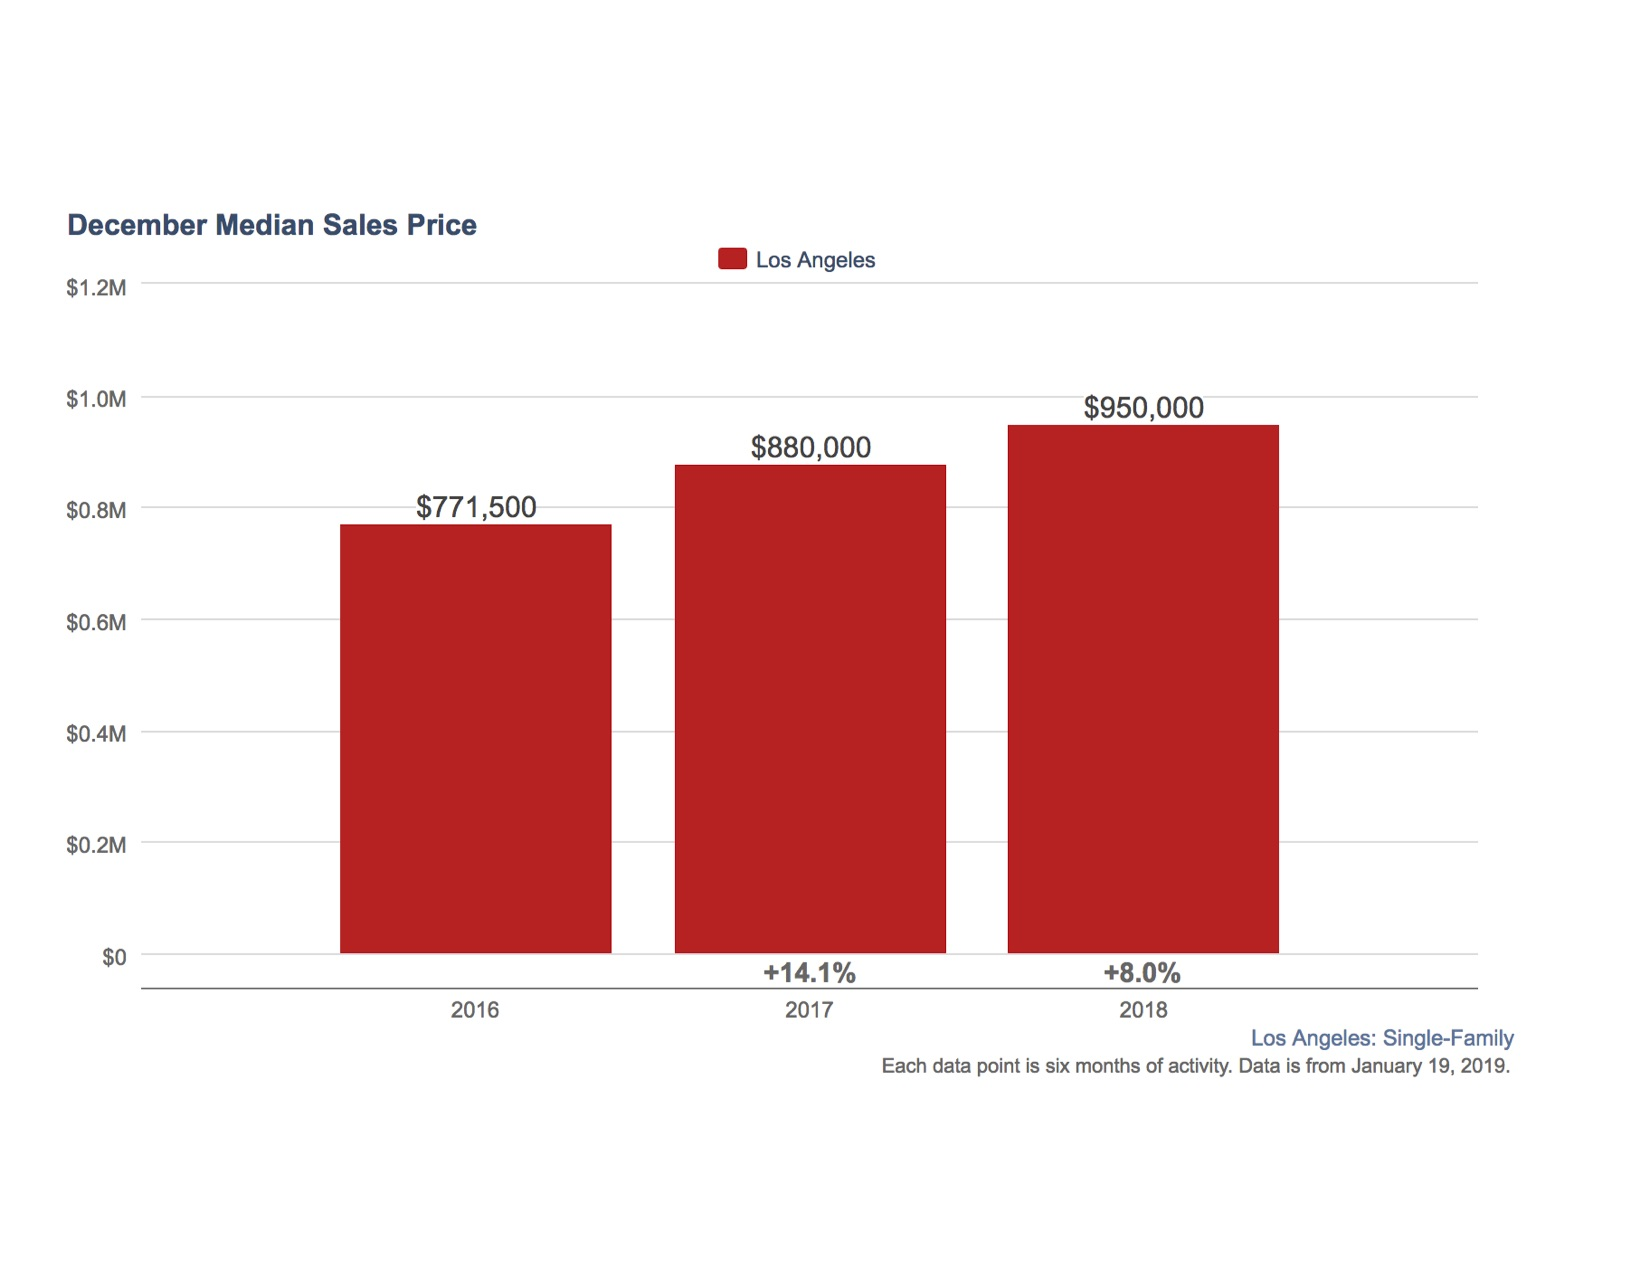 December Median Sales Price - LA.jpg